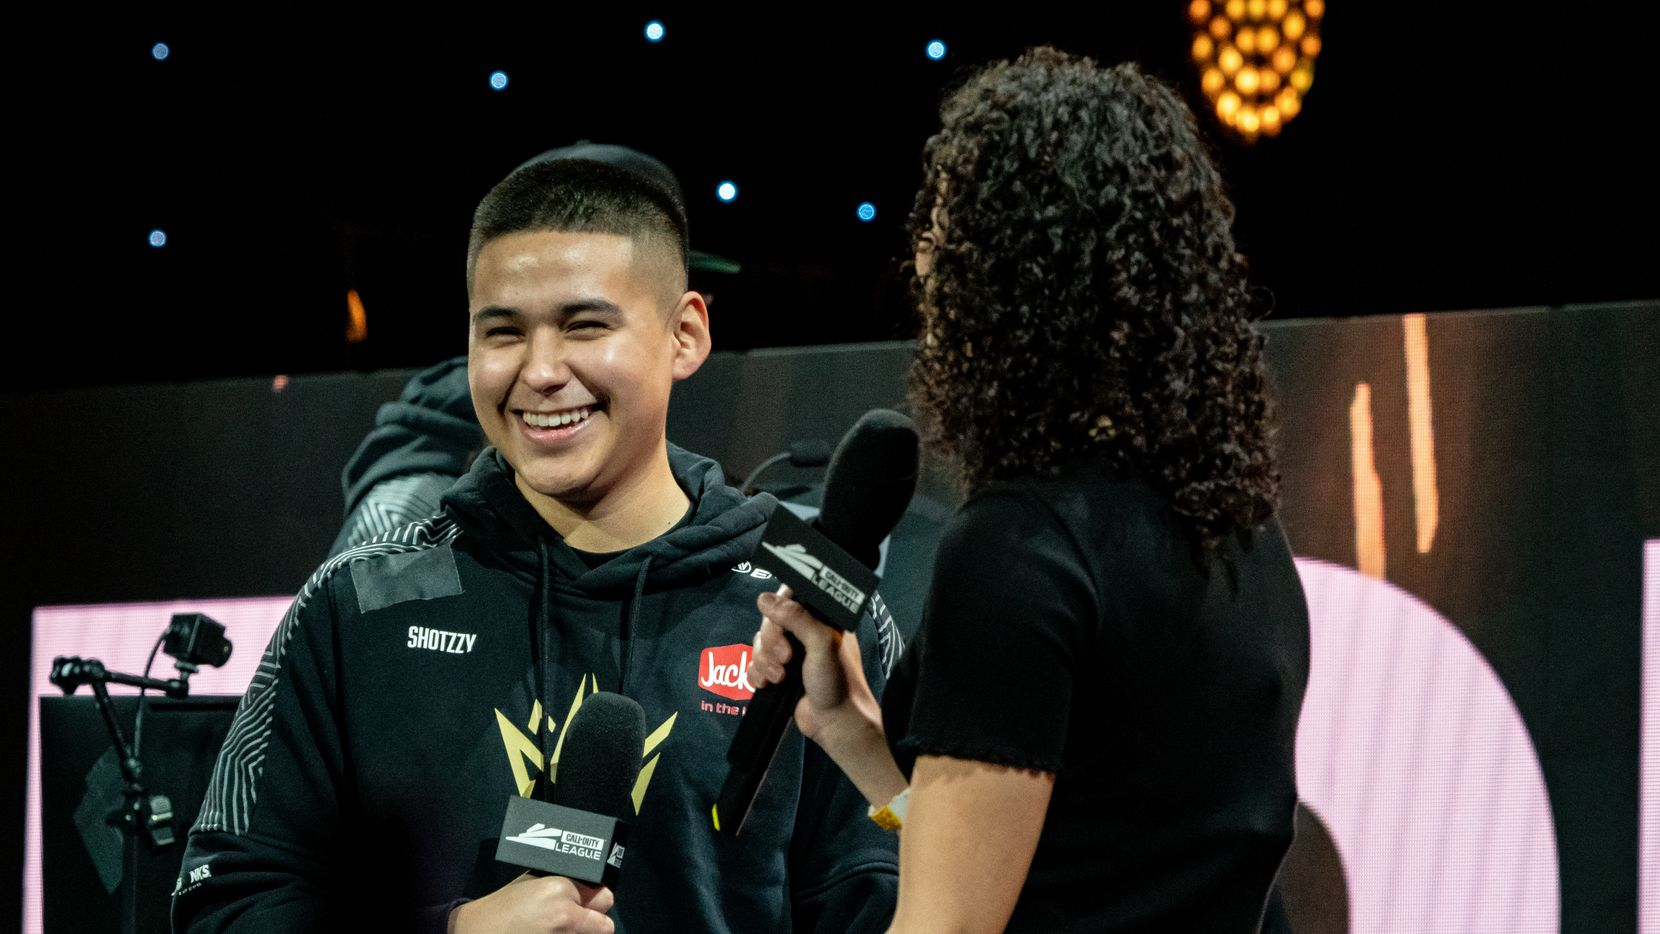 """Anthony """"Shotzzy"""" Cuebas-Castro speaks after the Dallas Empire defeat the Minnesota RØKKR in the first round during the Call of Duty League Championship Weekend at the Galen Center on Thursday, August 19, 2021 in Los Angeles, CA."""